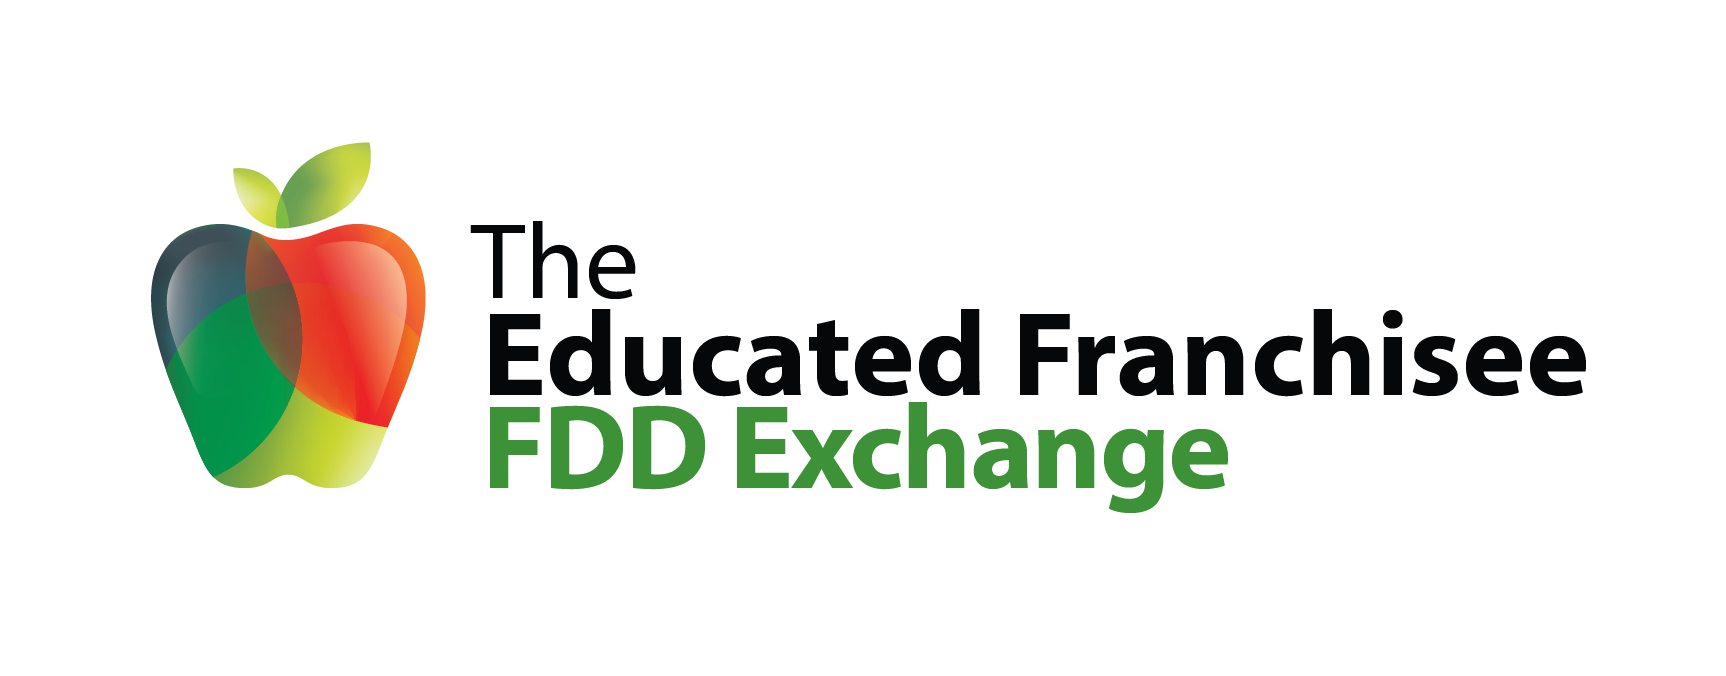 https://educatedfranchisee.com/wp-content/uploads/2017/07/EF_FDDexchange.png